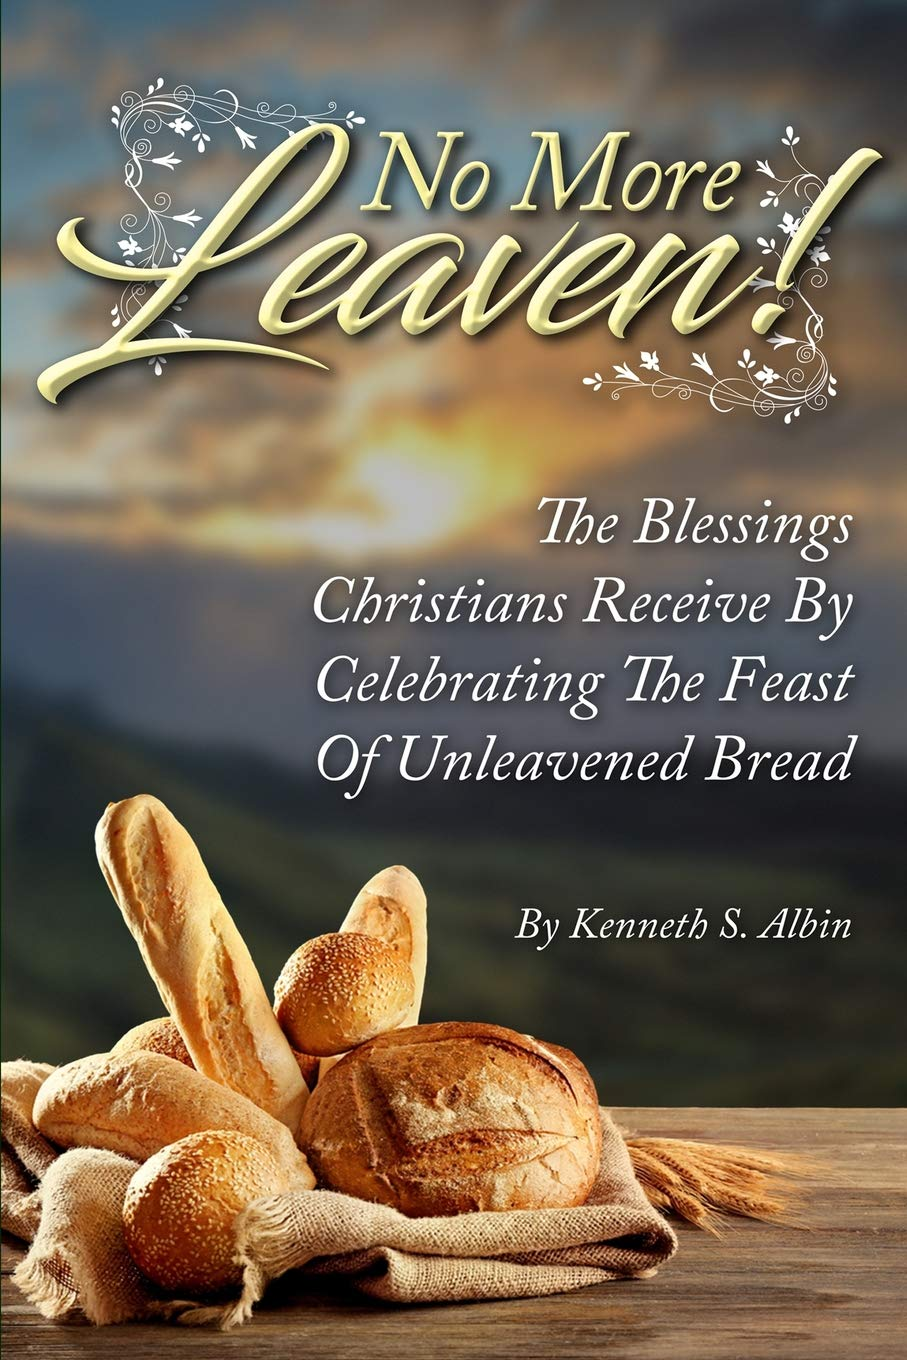 NO MORE LEAVEN!: The Blessings Christians Receive by